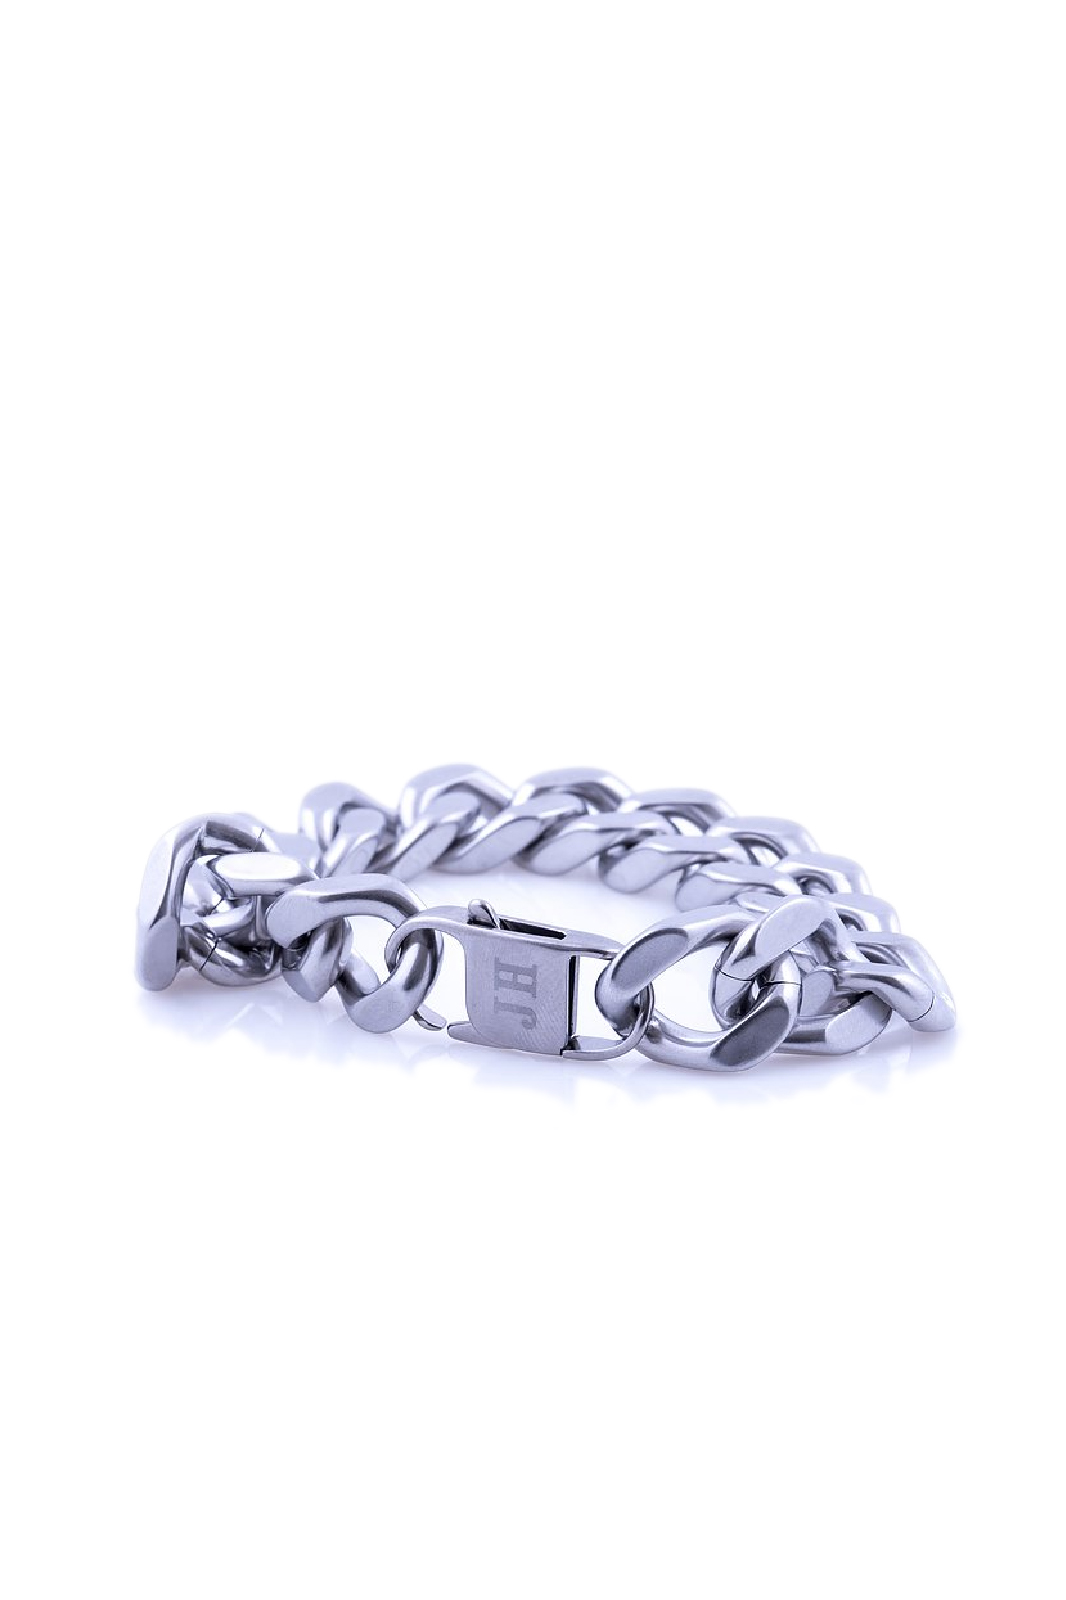 Bracelet Chriz Silver stainless steel